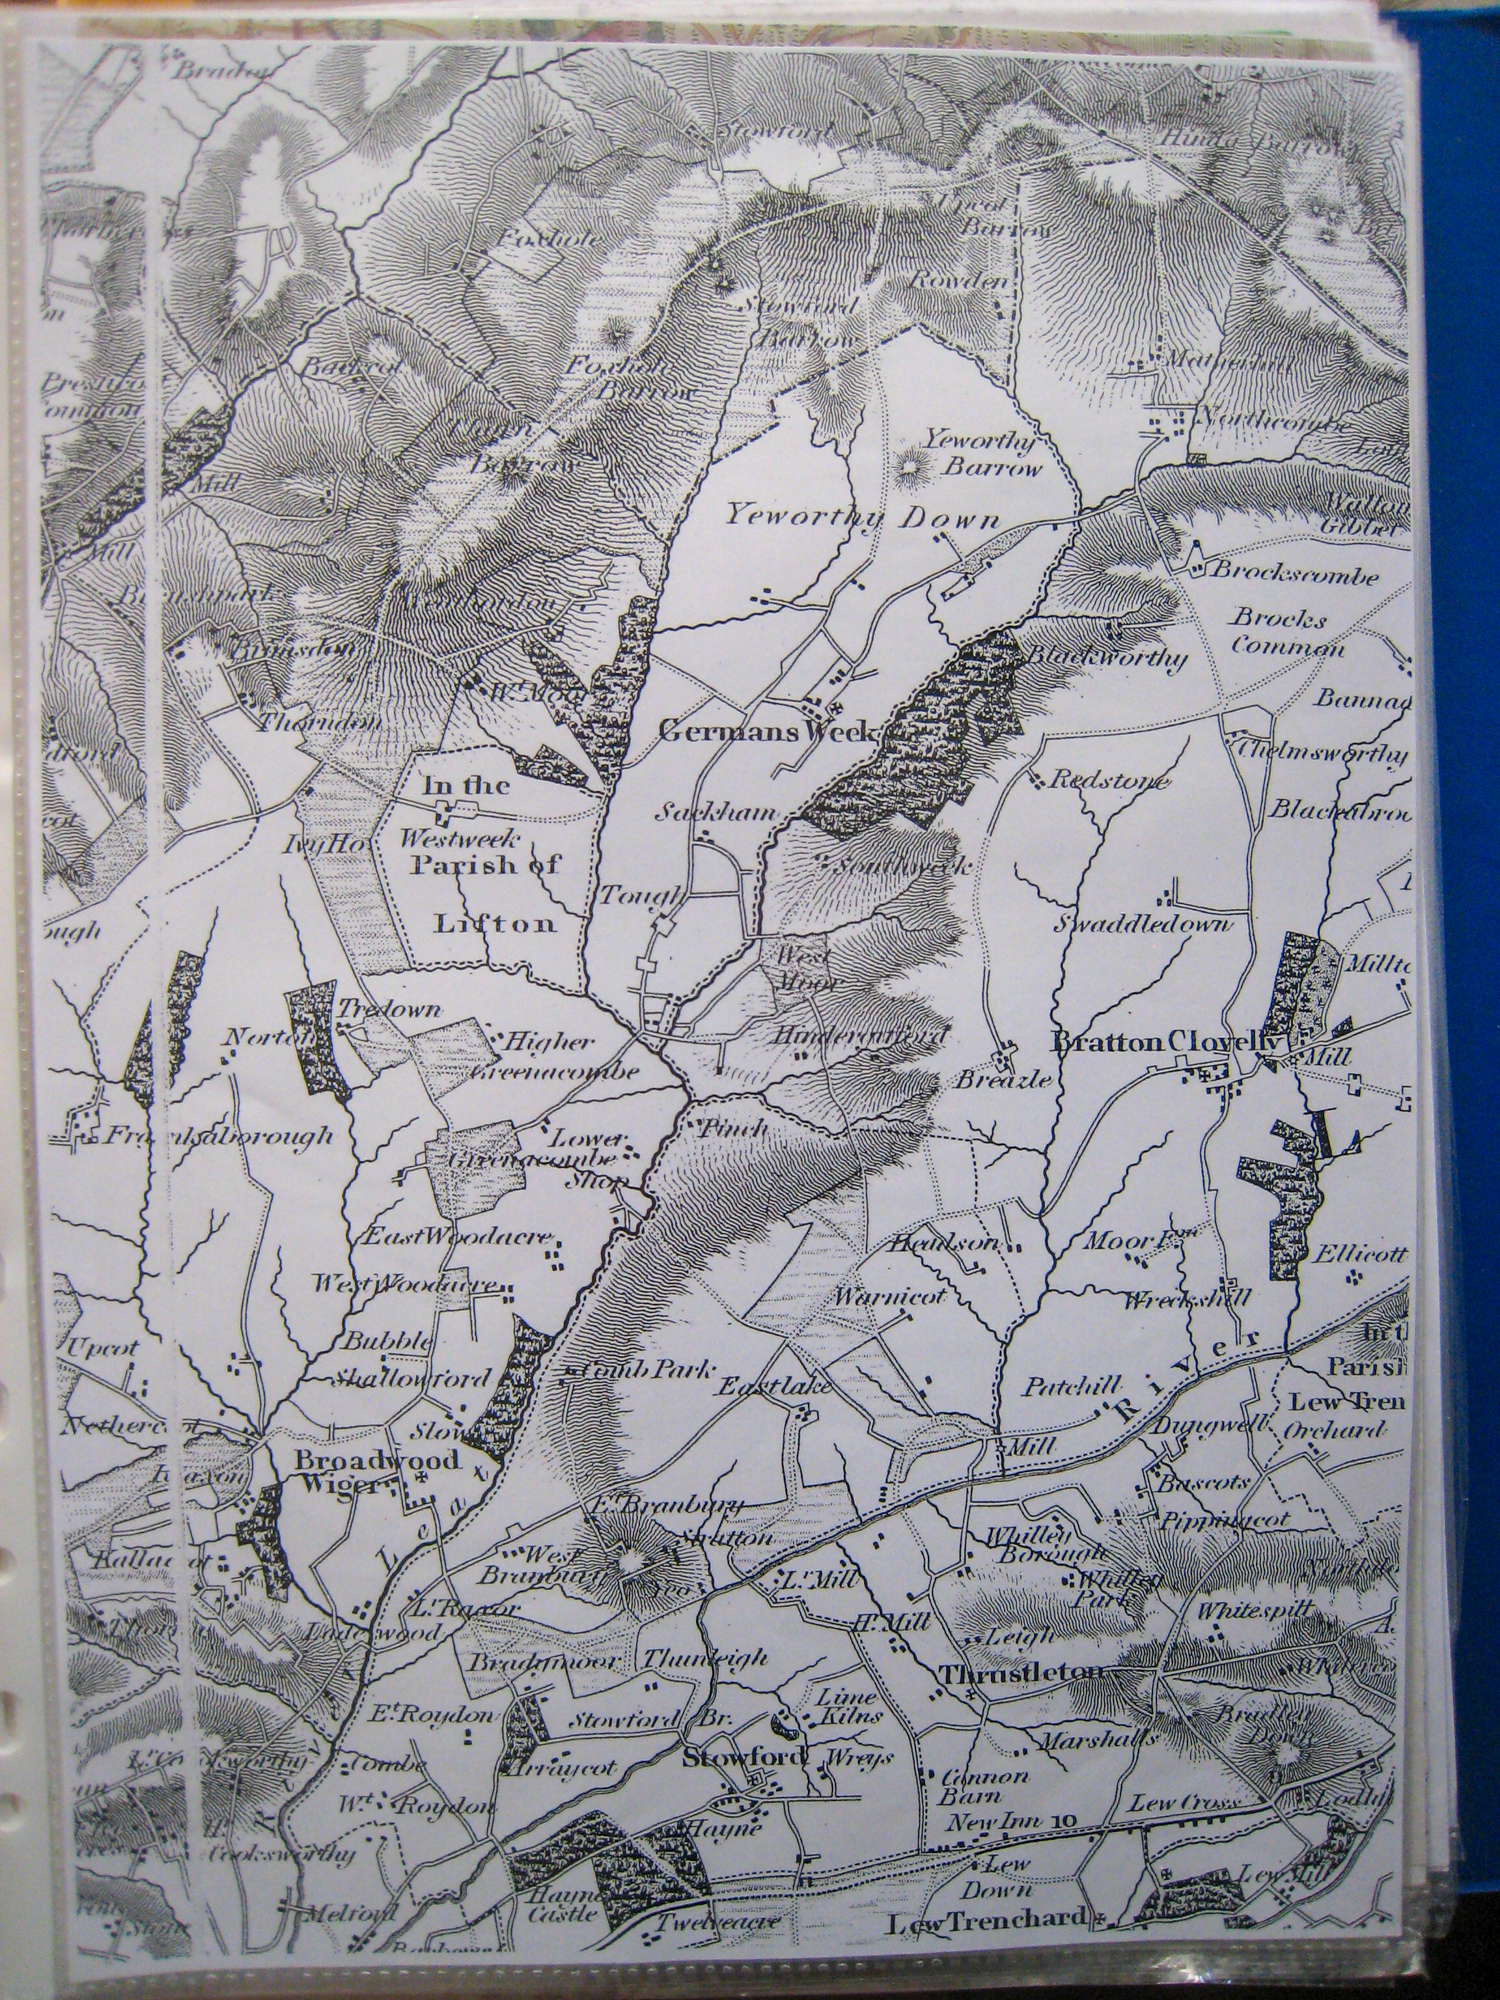 Historical map of the Germansweek and Roadford area